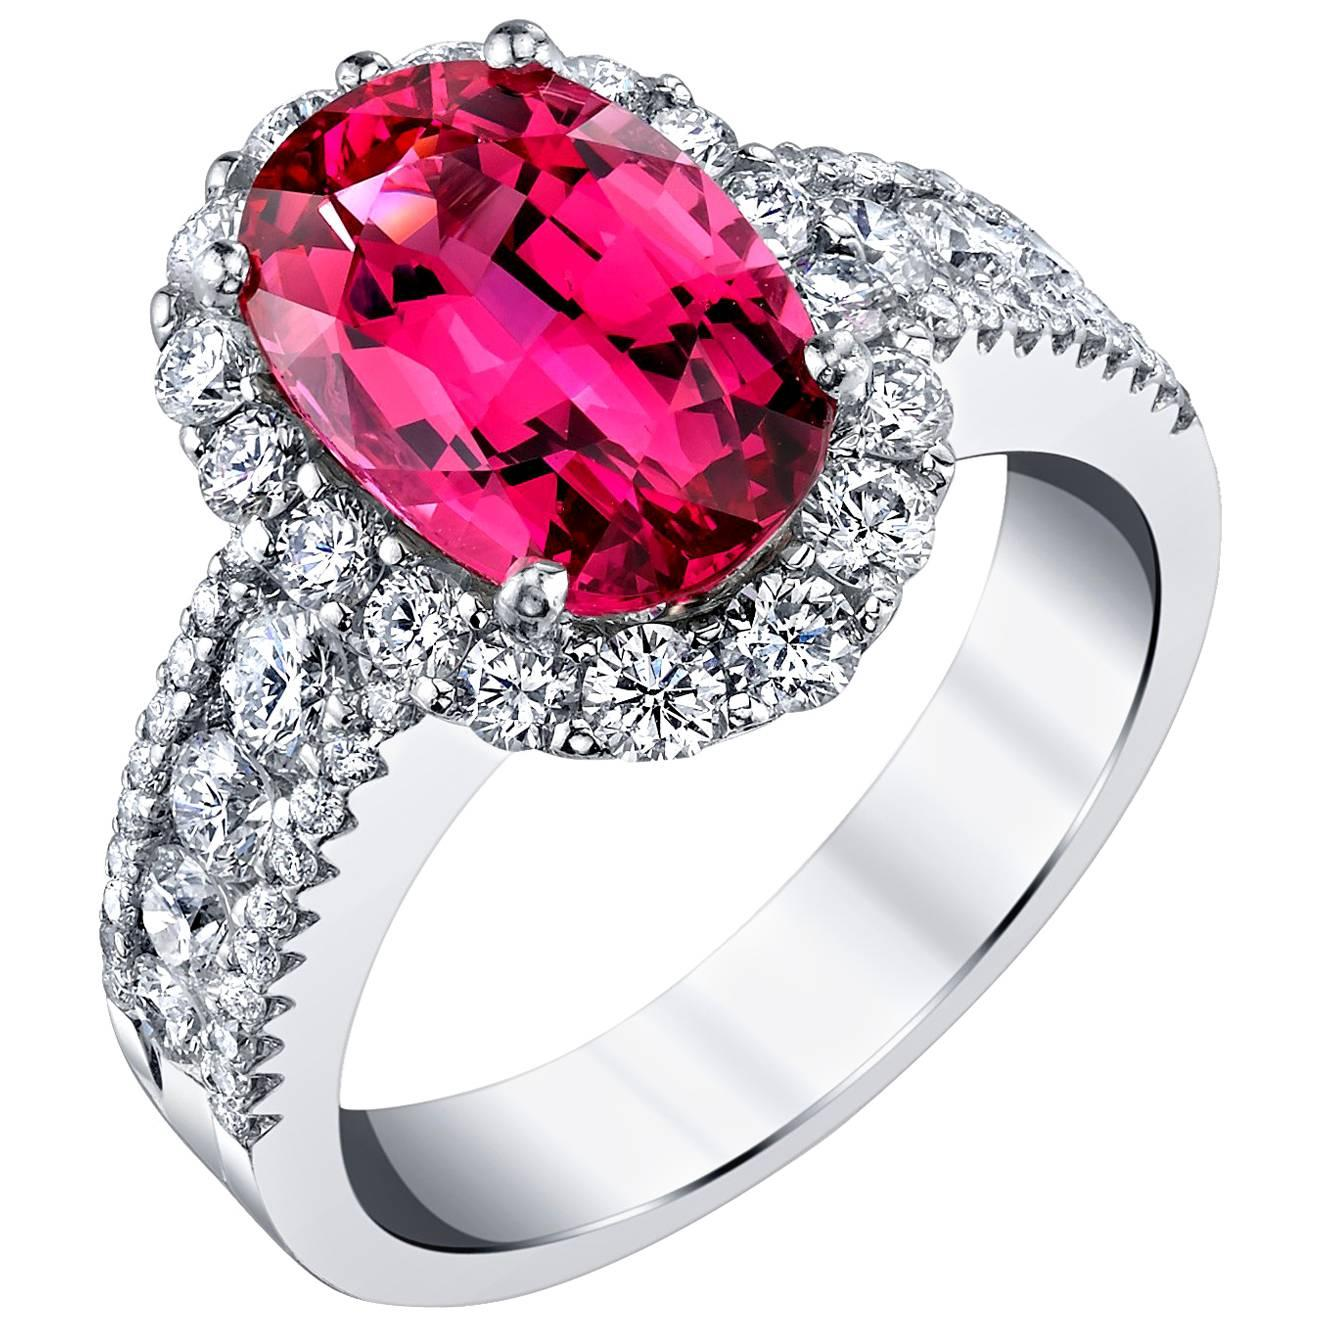 3.63 Carat Red Spinel, Diamond Halo 18k White Gold Cocktail Band Engagement Ring